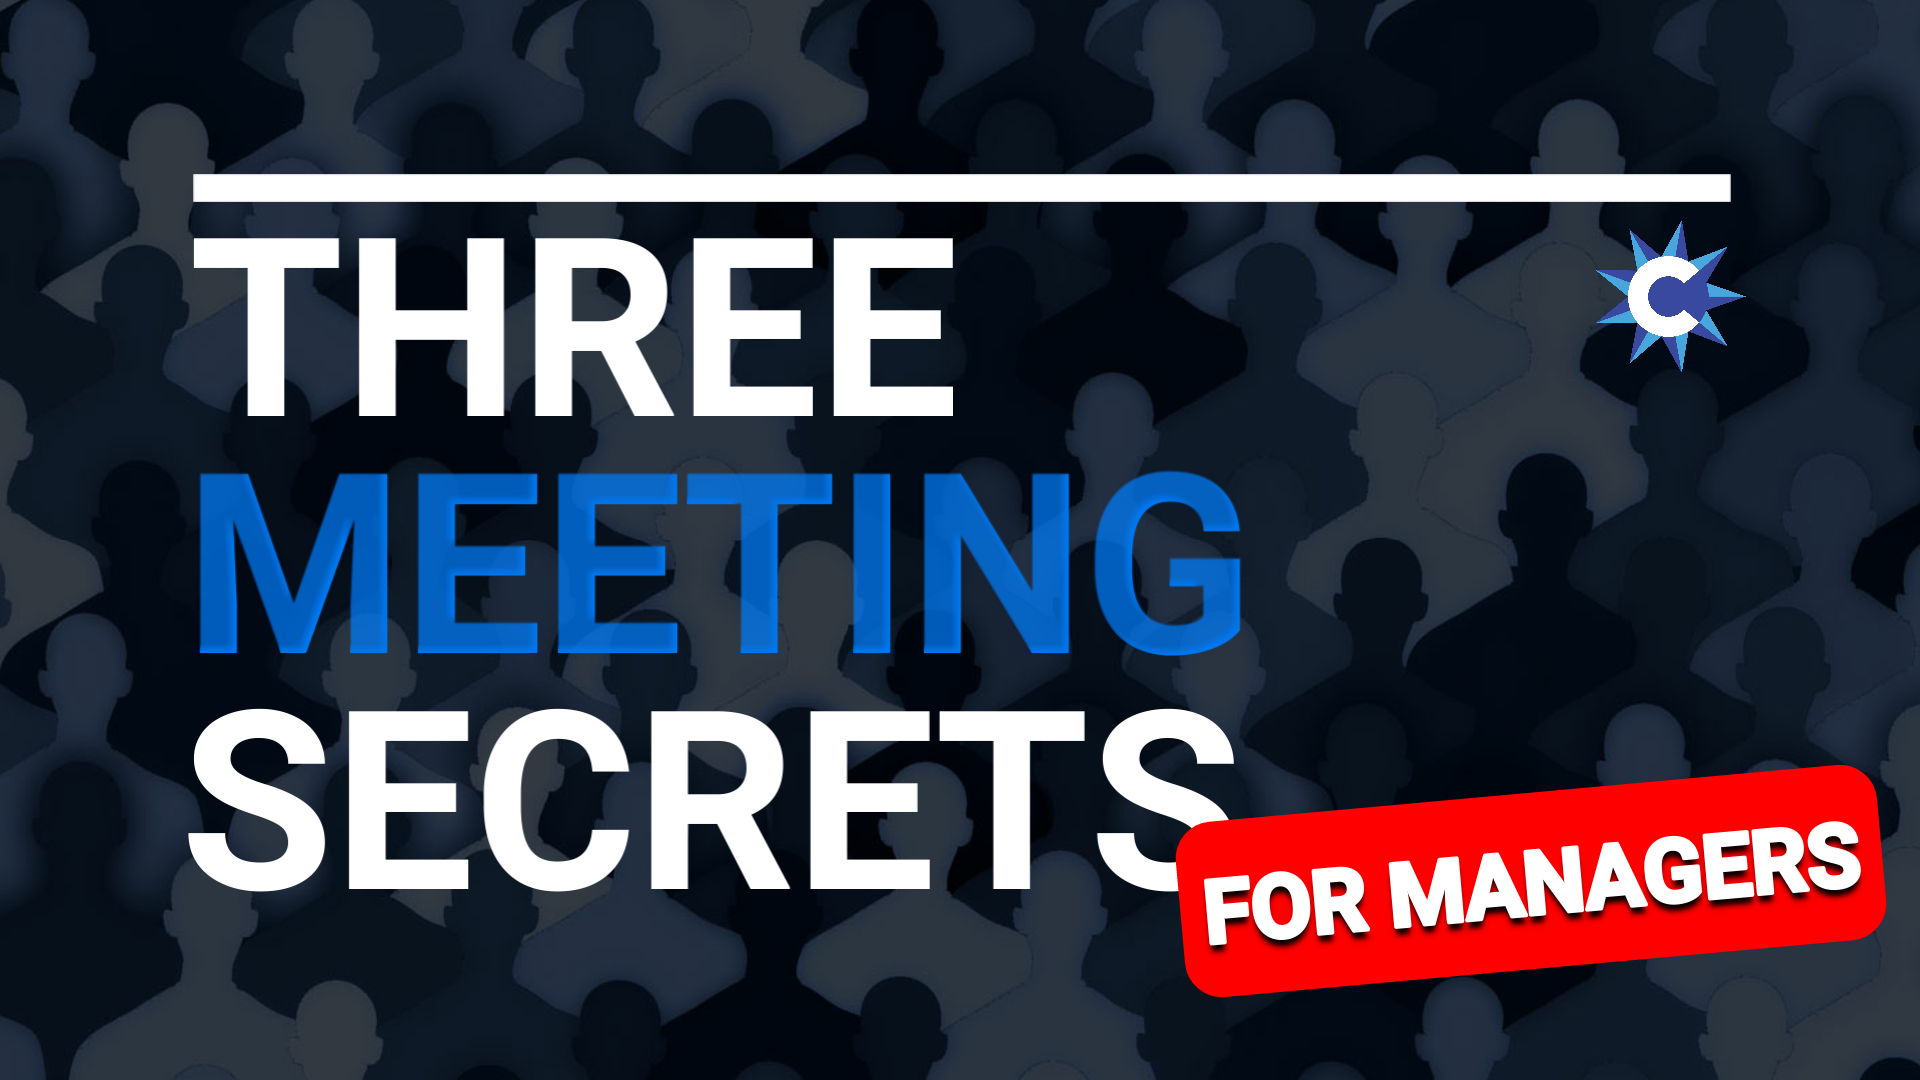 Meeting Secret Benefits